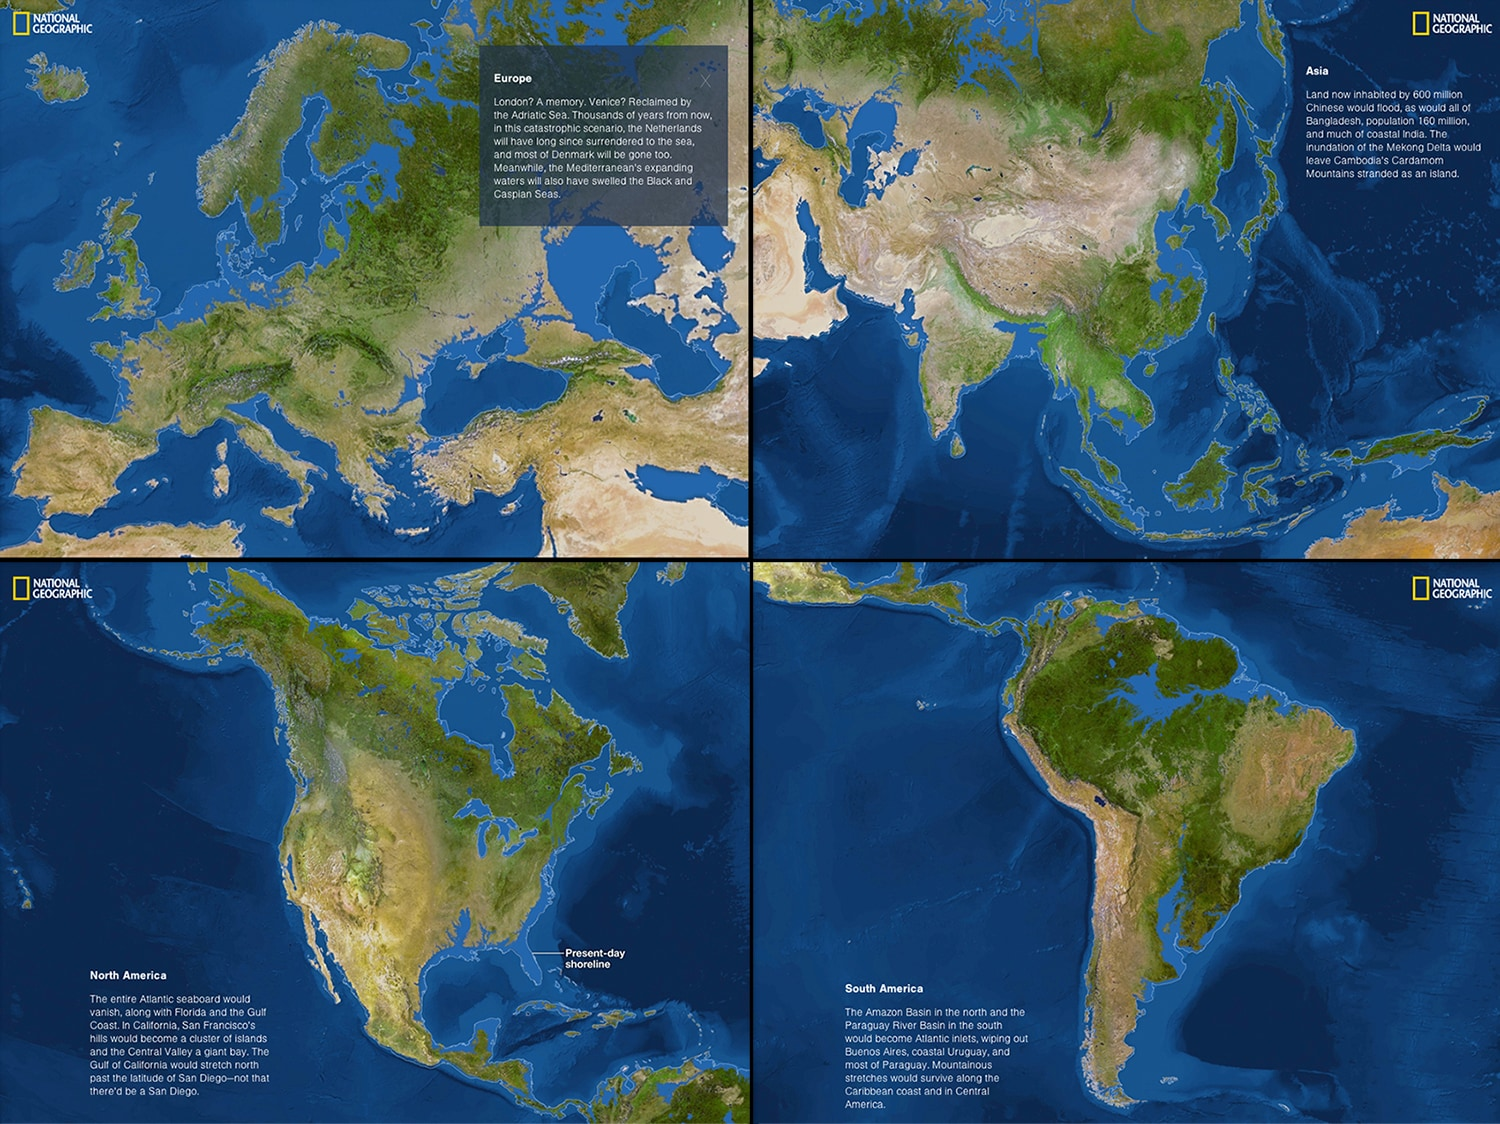 Click to enlarge. (National Geographic © September 2013 National Geographic Society / Full source info here)